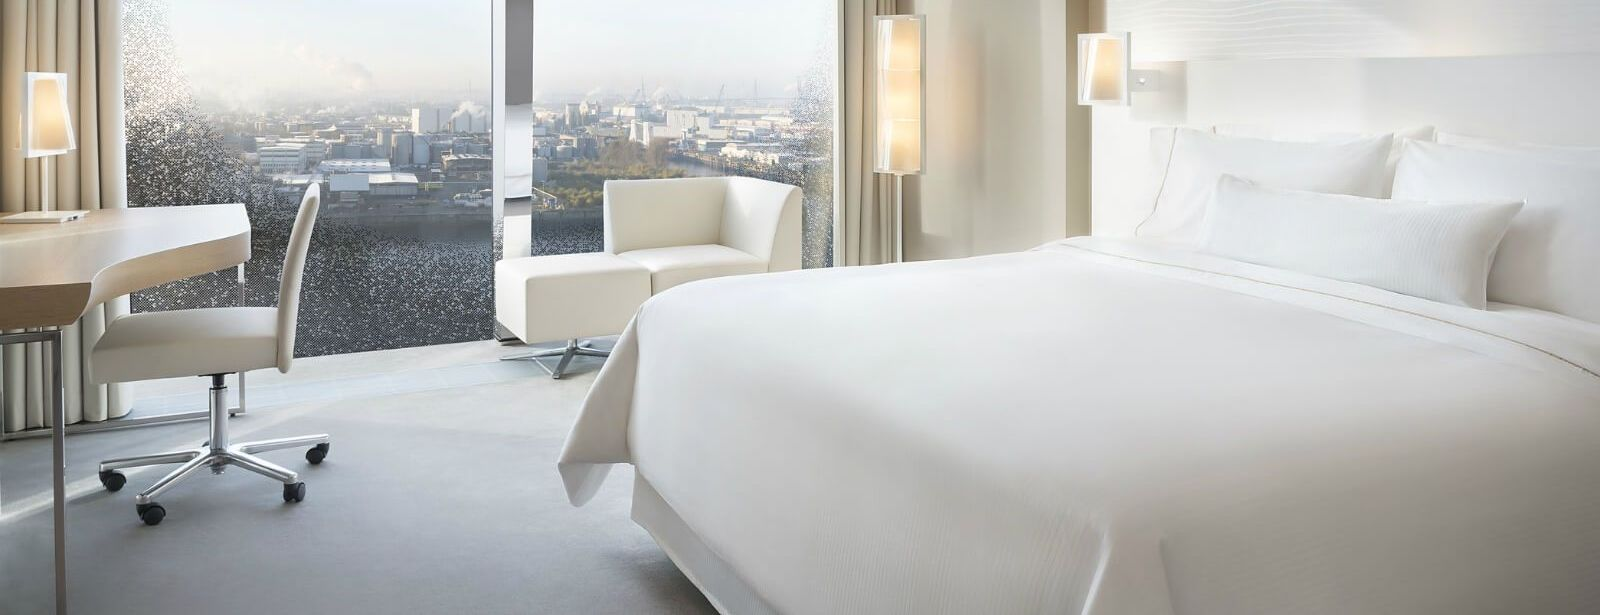 Westin Hamburg Hotel - Sleep well Panaroma room